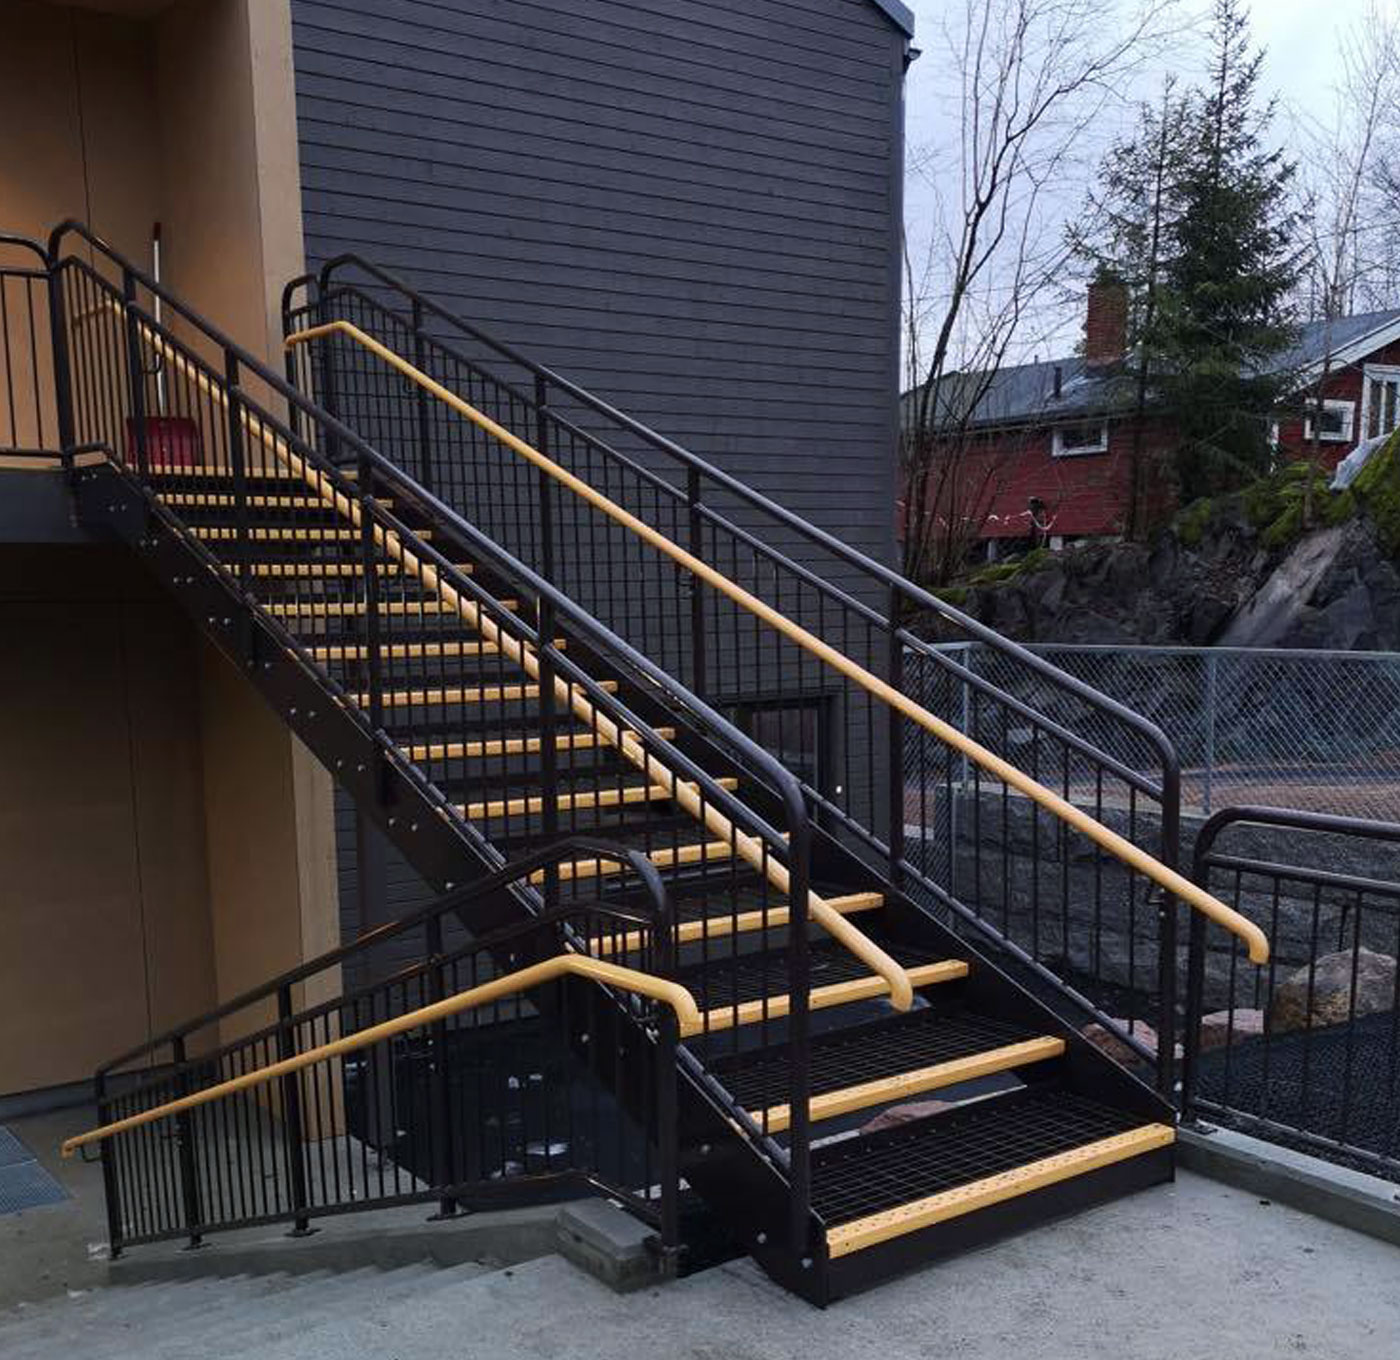 Powder coated straight staircase with grating steps and inner handrail in wood